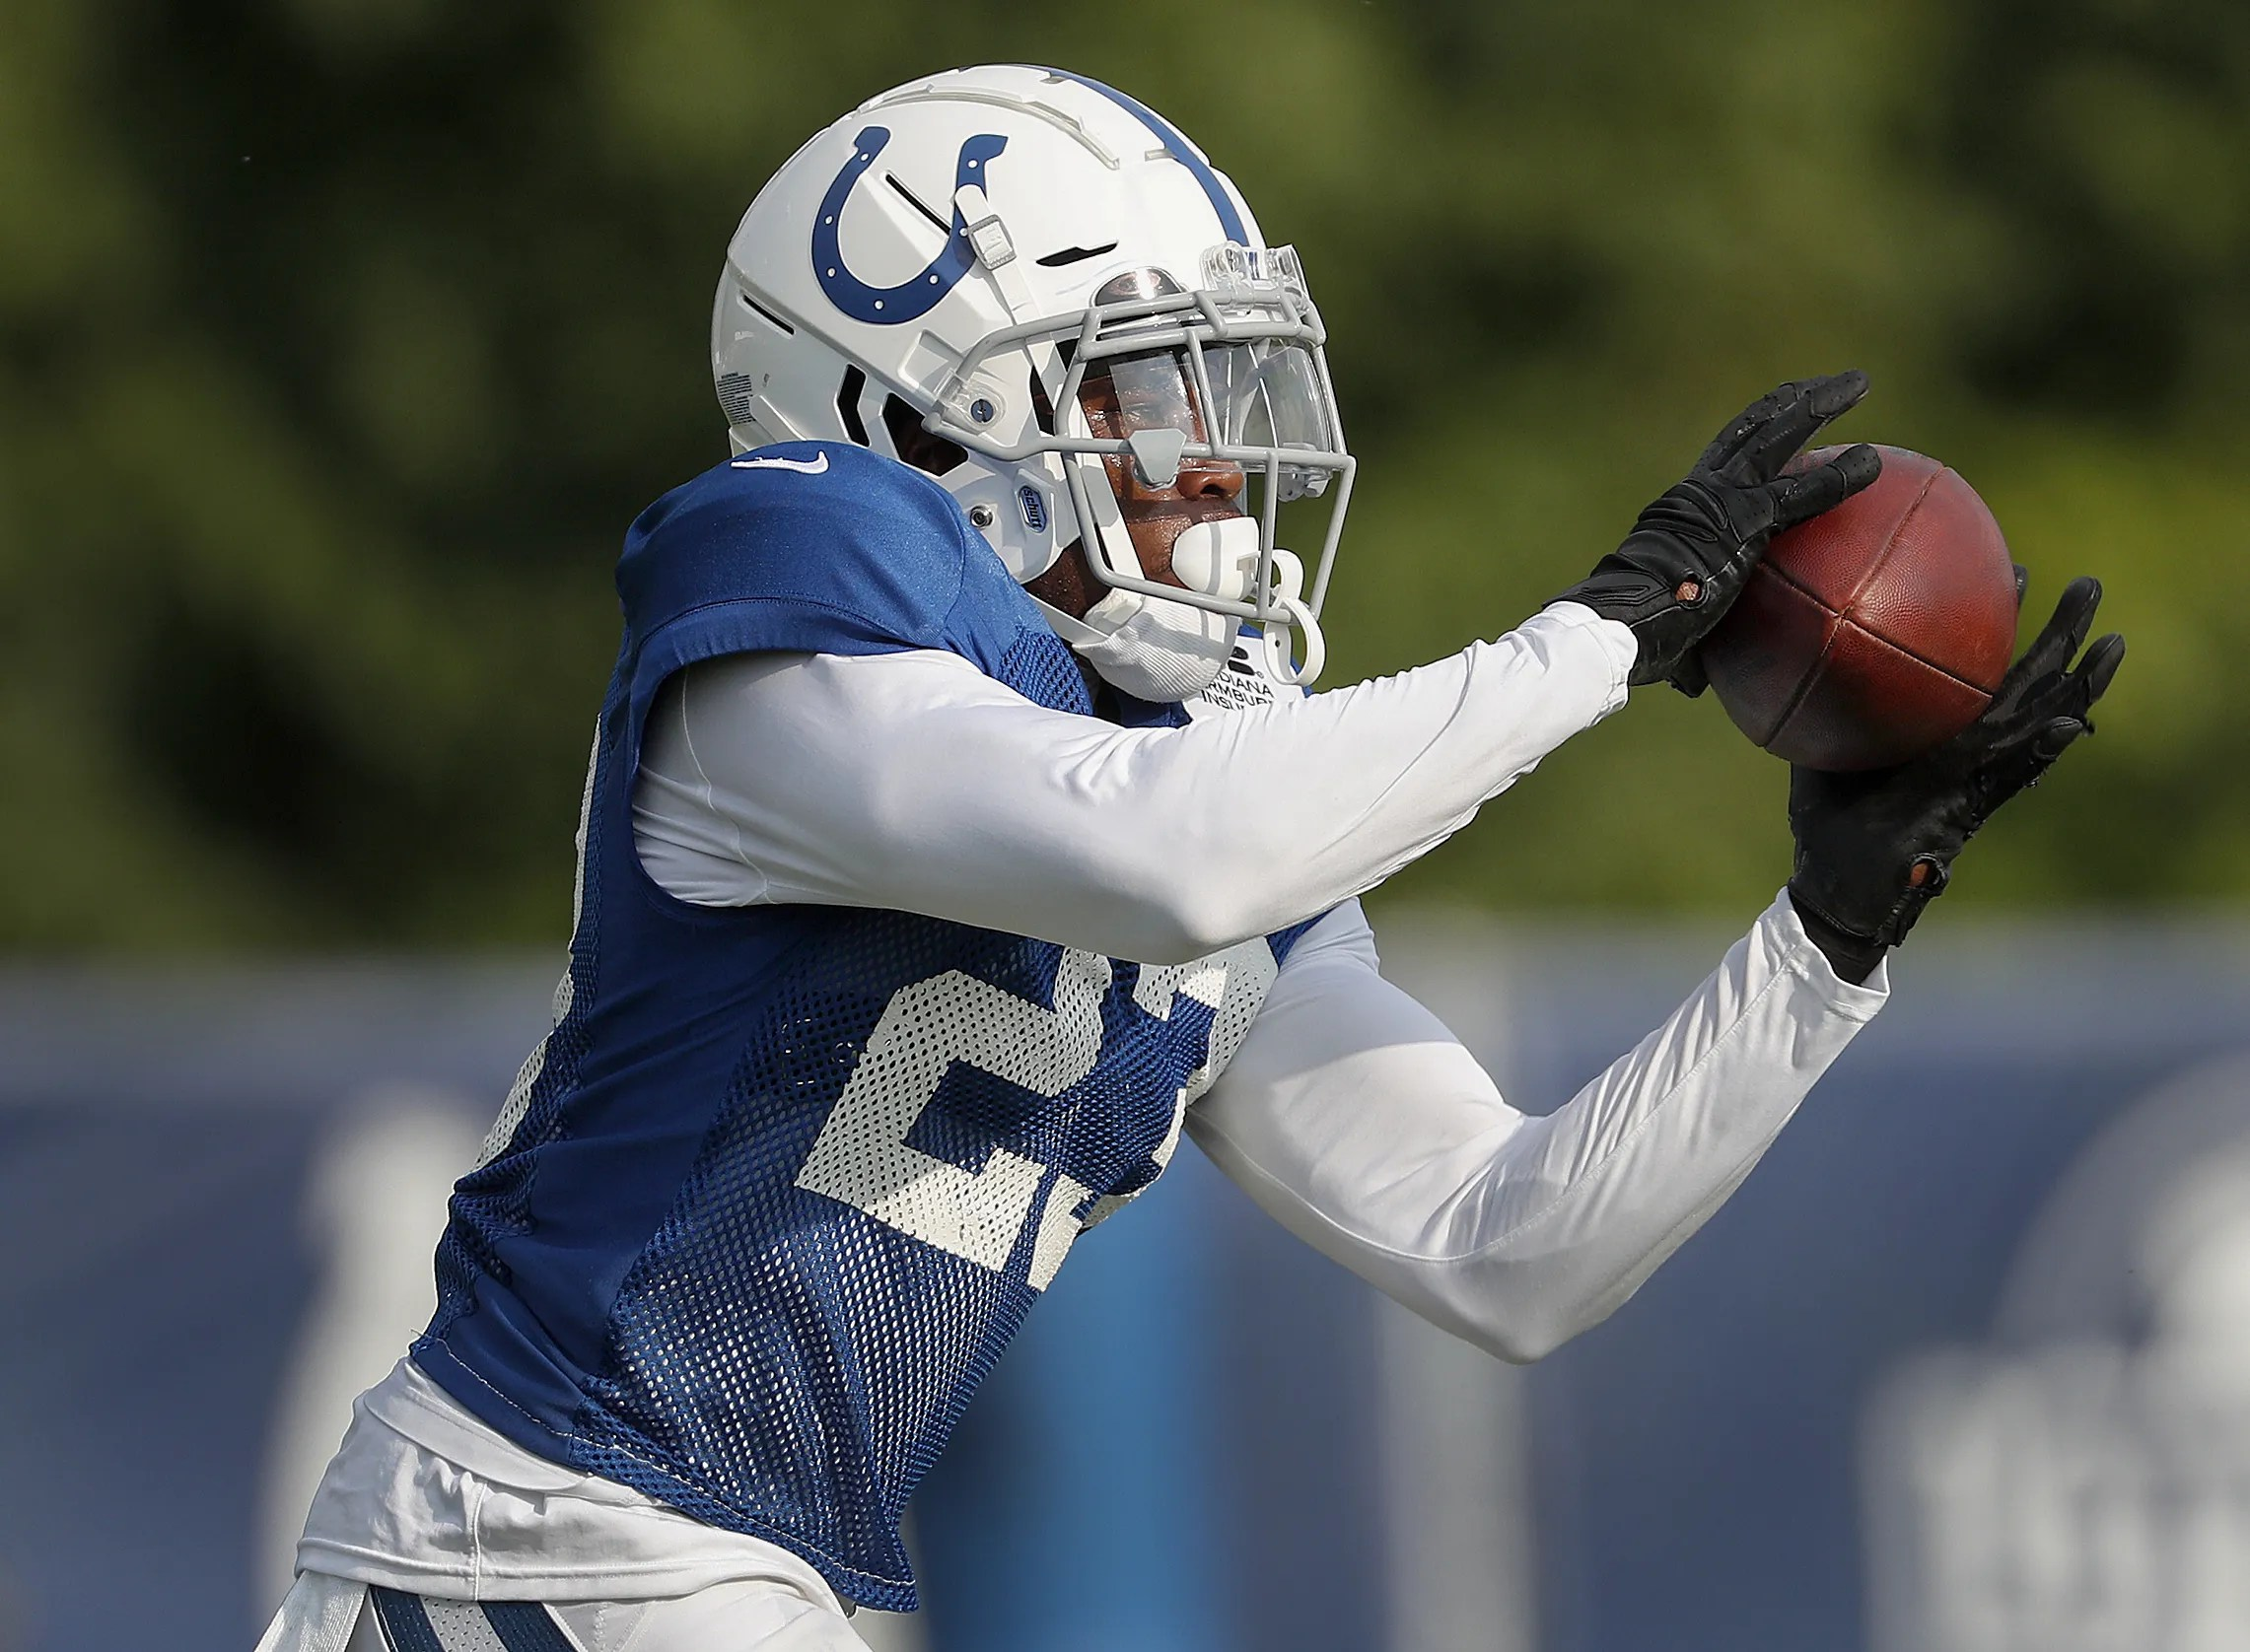 Indianapolis colts training camp at grand park in westfield also depth chart kemoko turay kenny moore listed as starters rh indystar